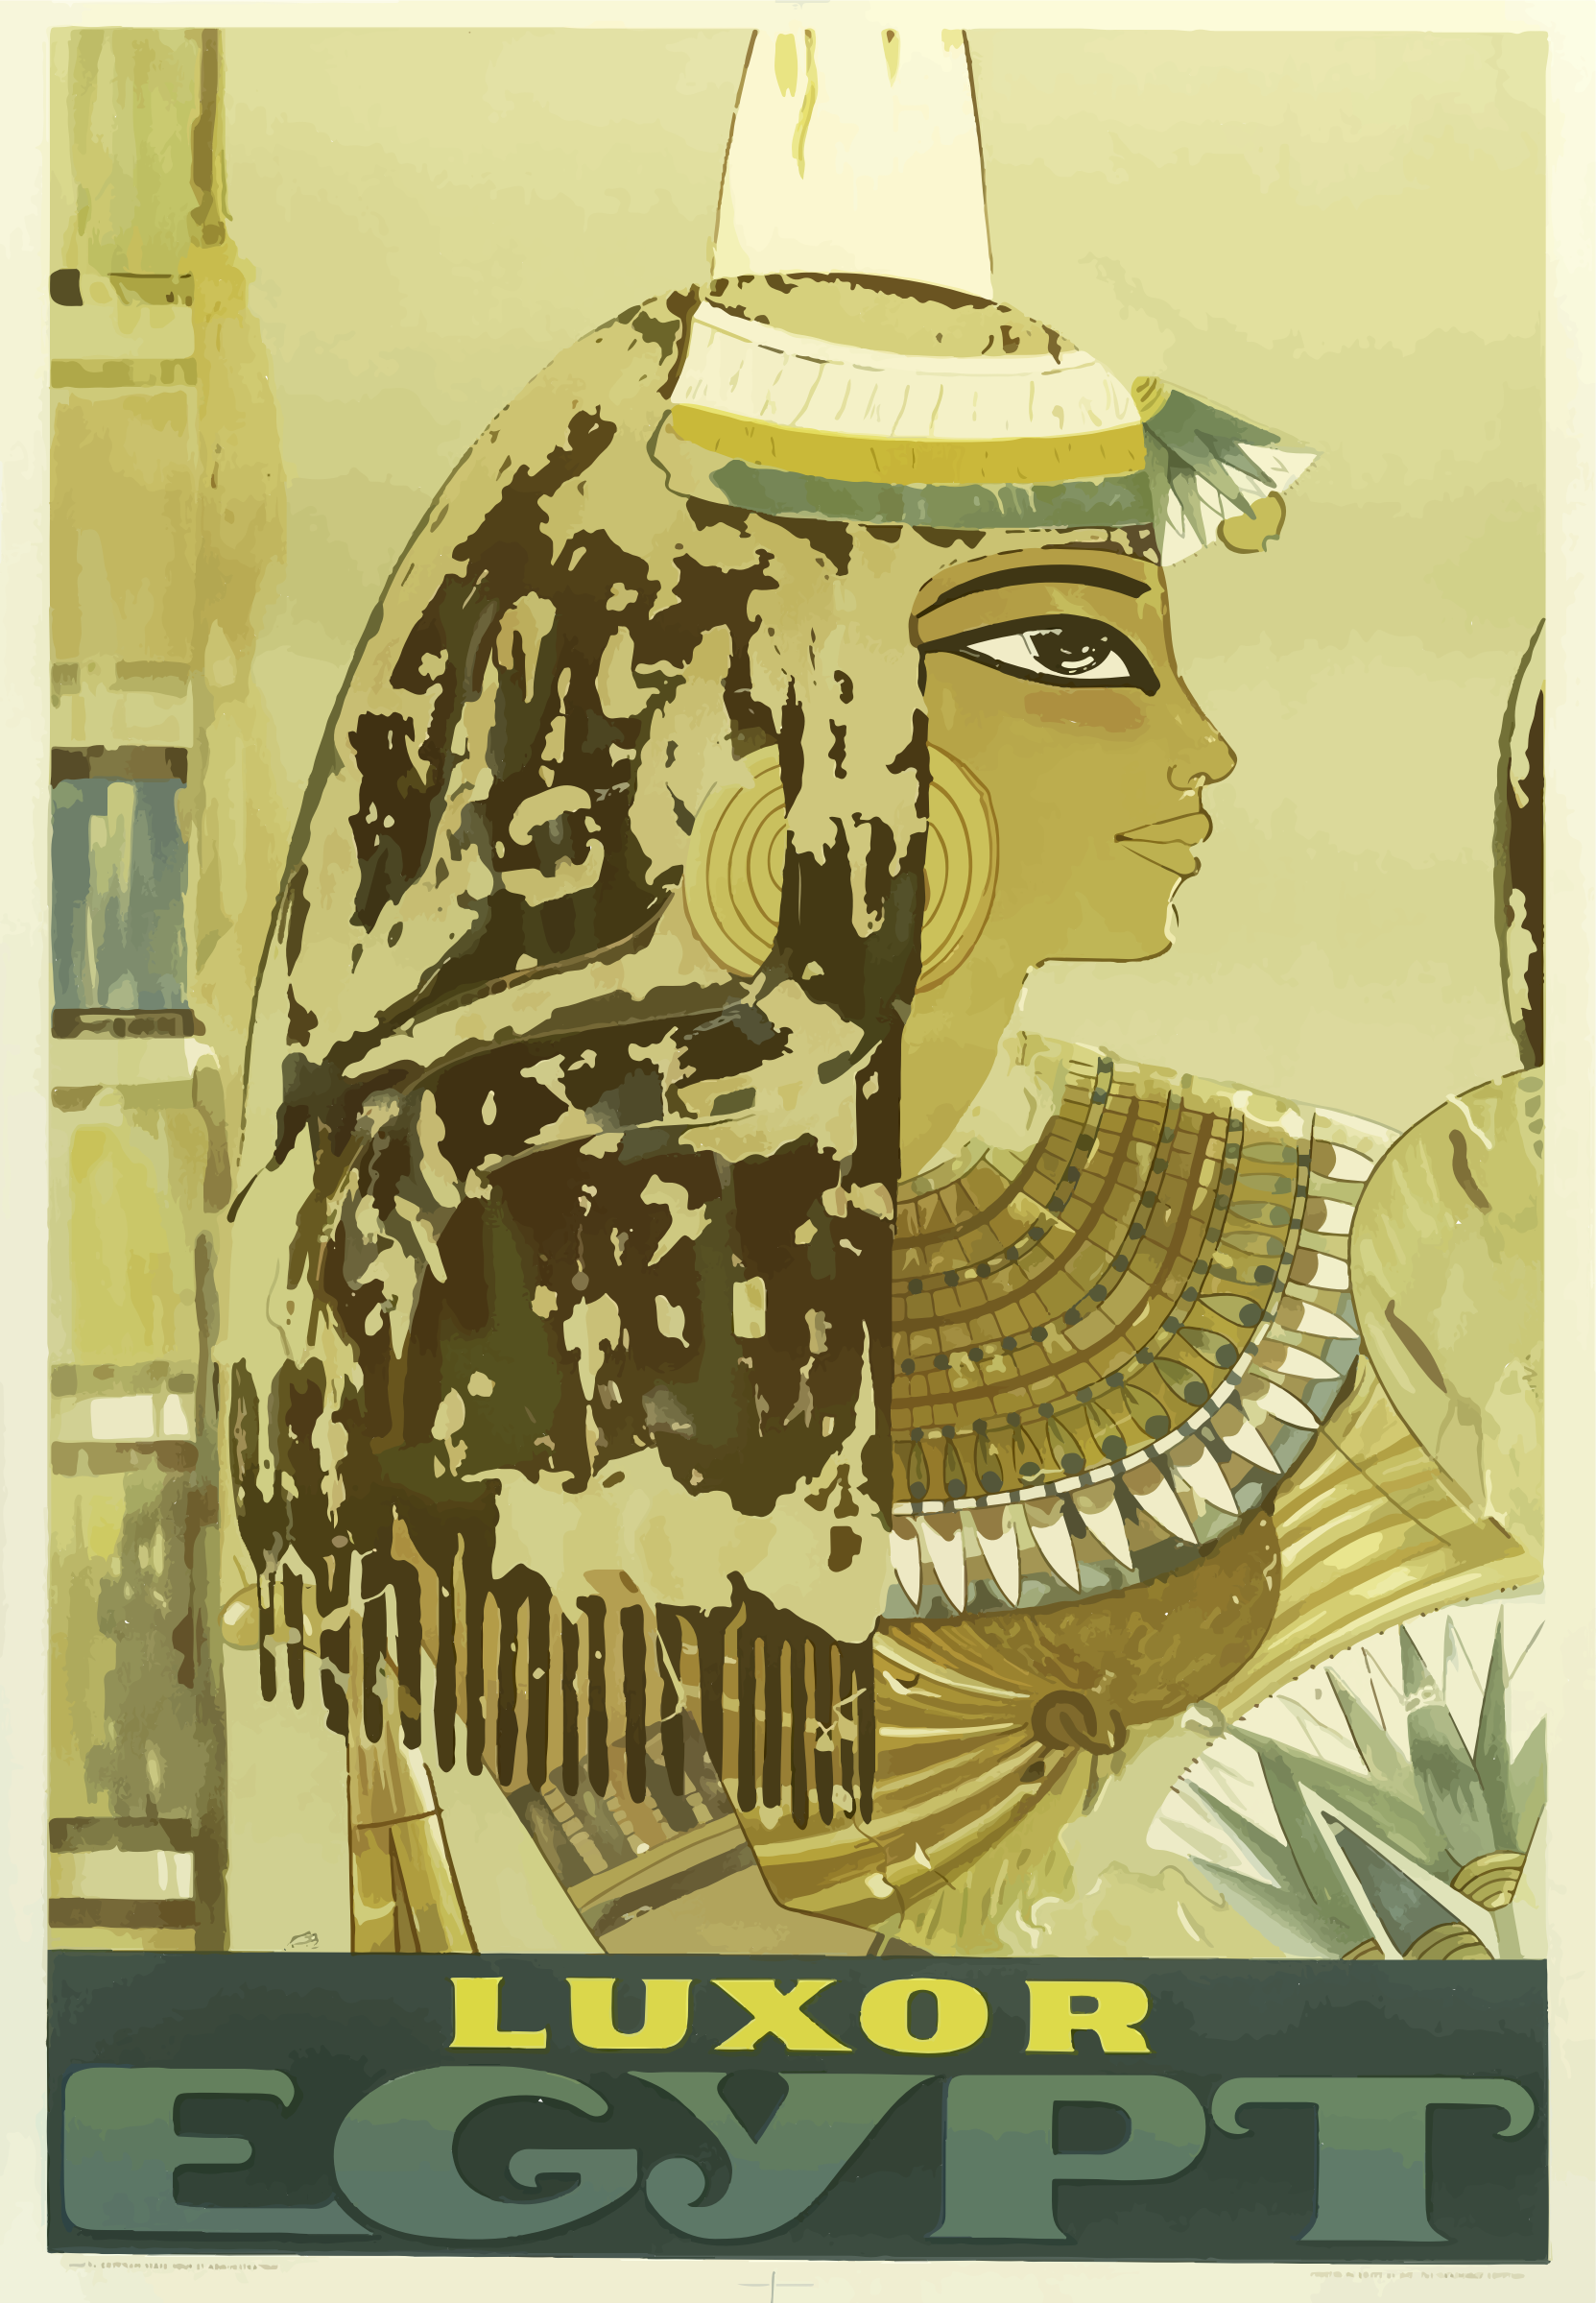 Vintage Travel Poster Luxor Egypt by GDJ